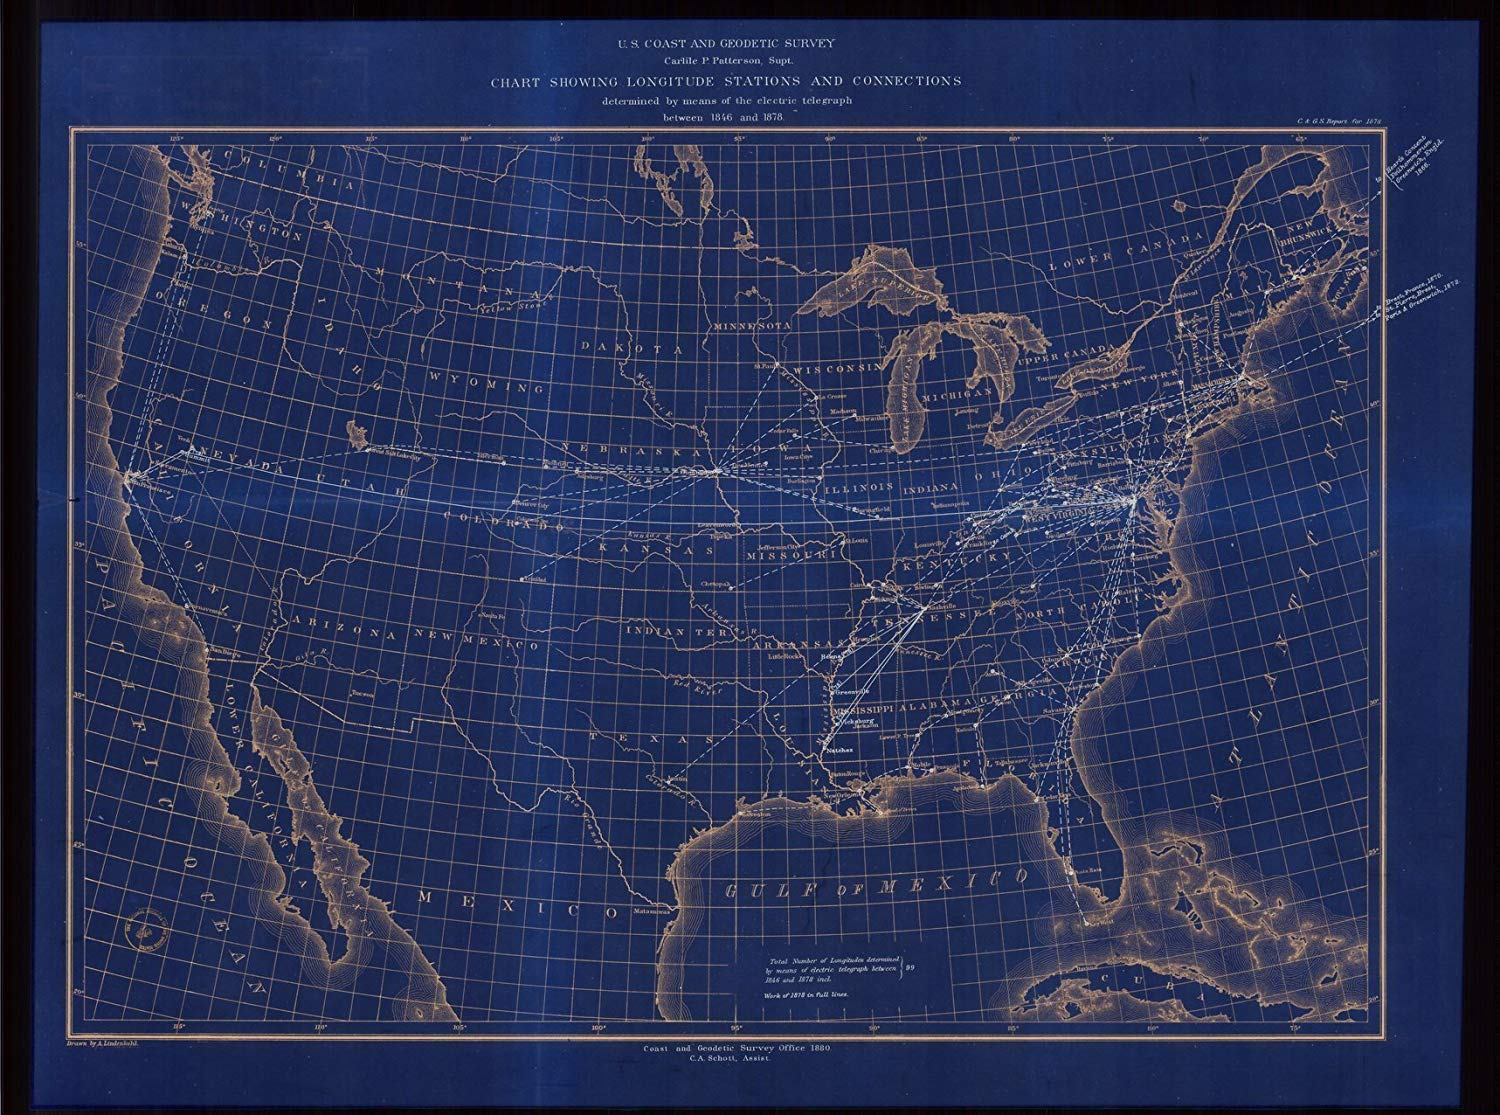 Vintography 18 x 24 Reprinted Blueprint Style Nautical Map Chart Showing Longitude Stations Connections Determined Means The Electric Telegraph Between 1846 1878 1880 NOAA 30a